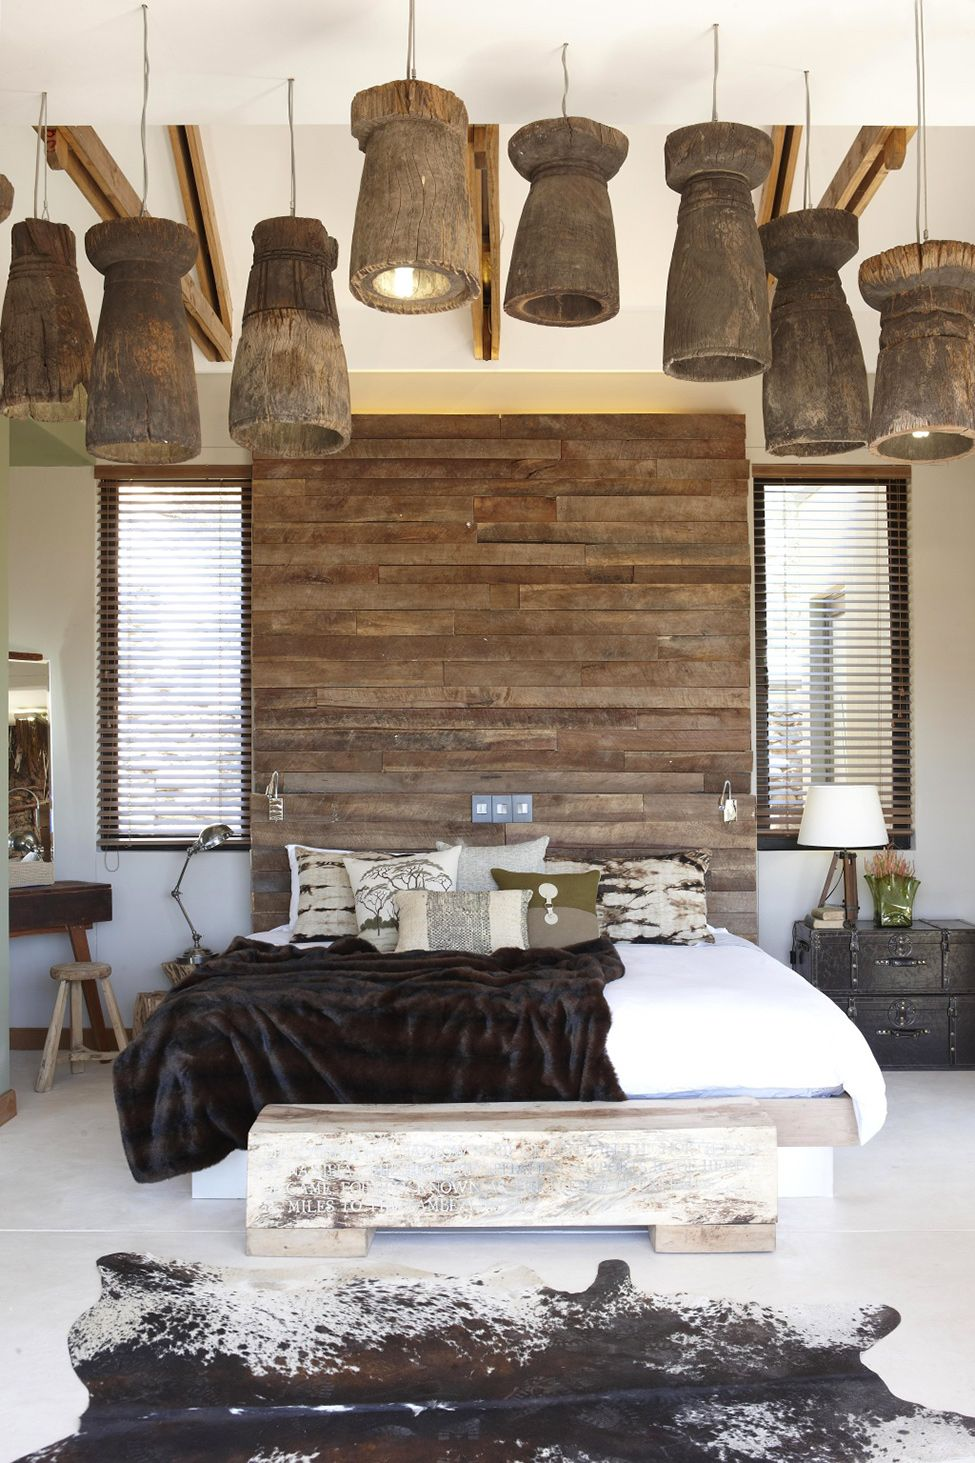 Cool Light Fixtures And Wood Headboard